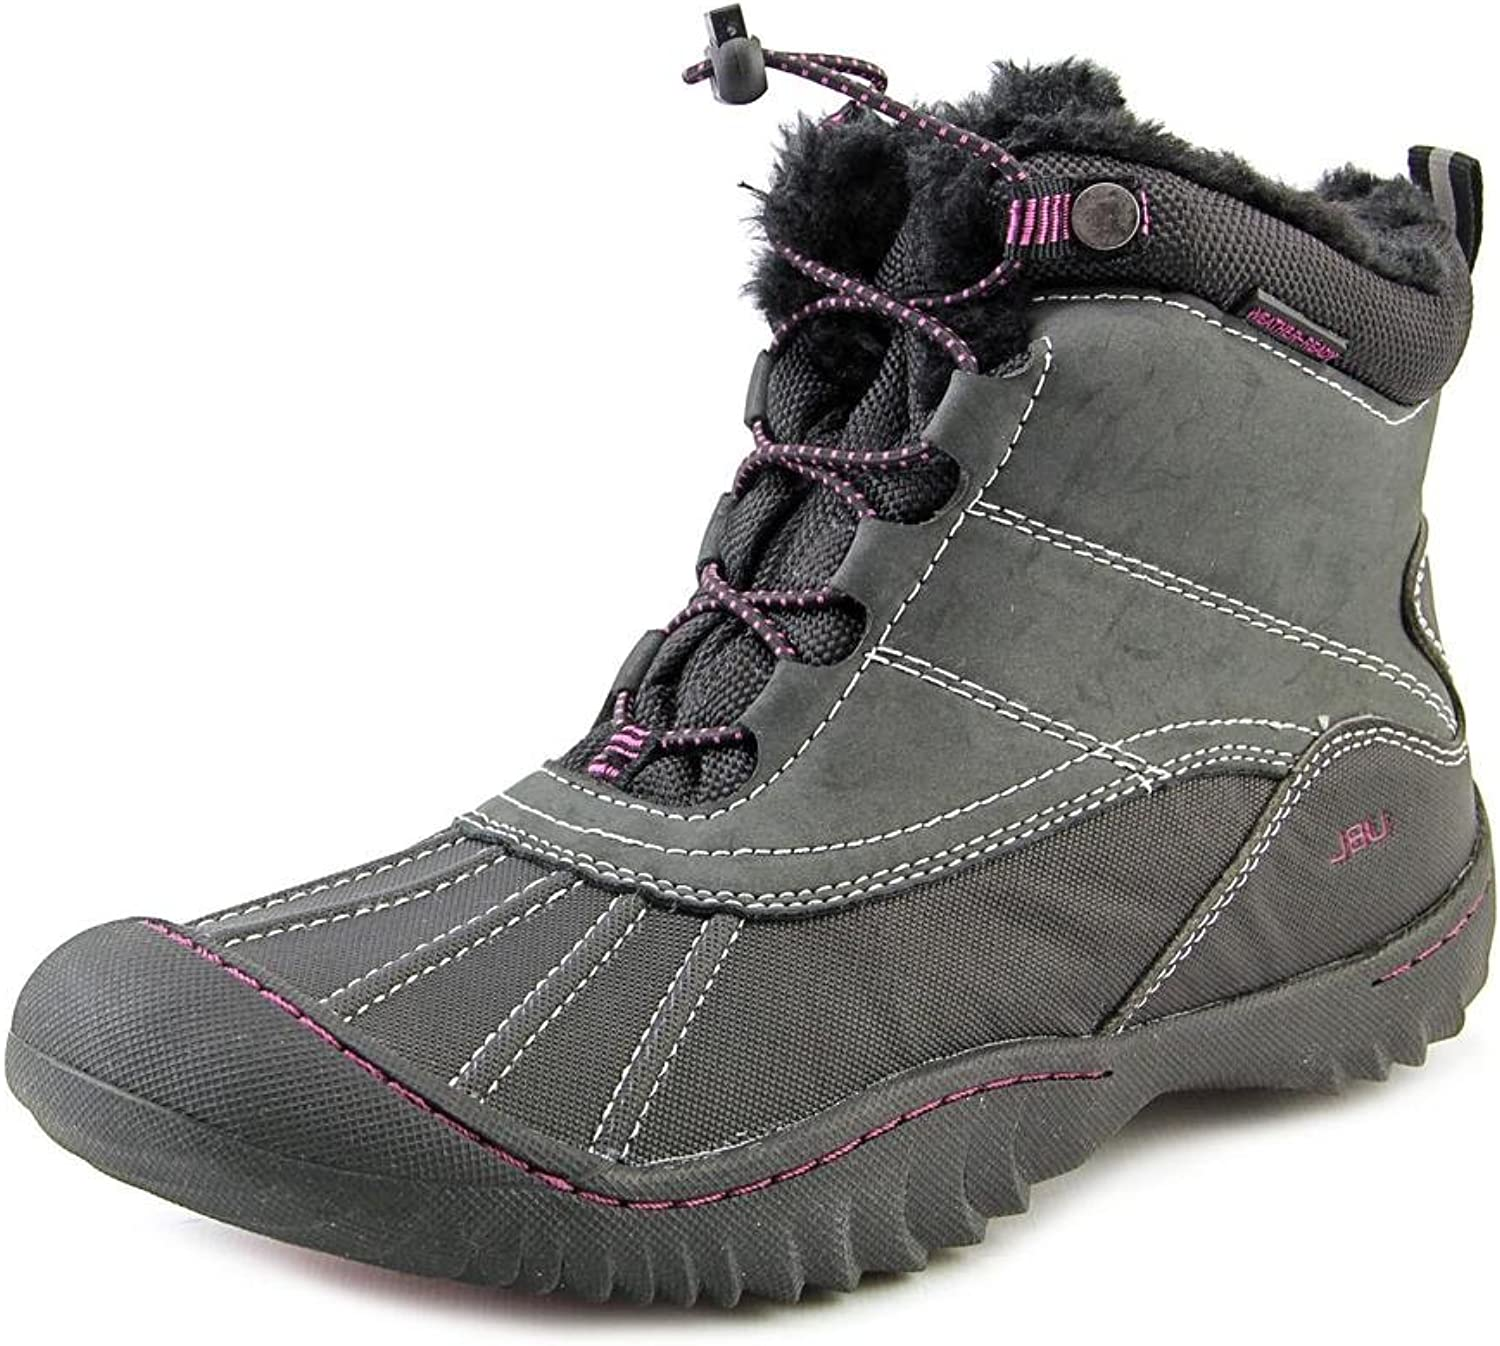 JBU Womens Pullman Round Toe Ankle Cold Weather Boots, Black, Size 6.5